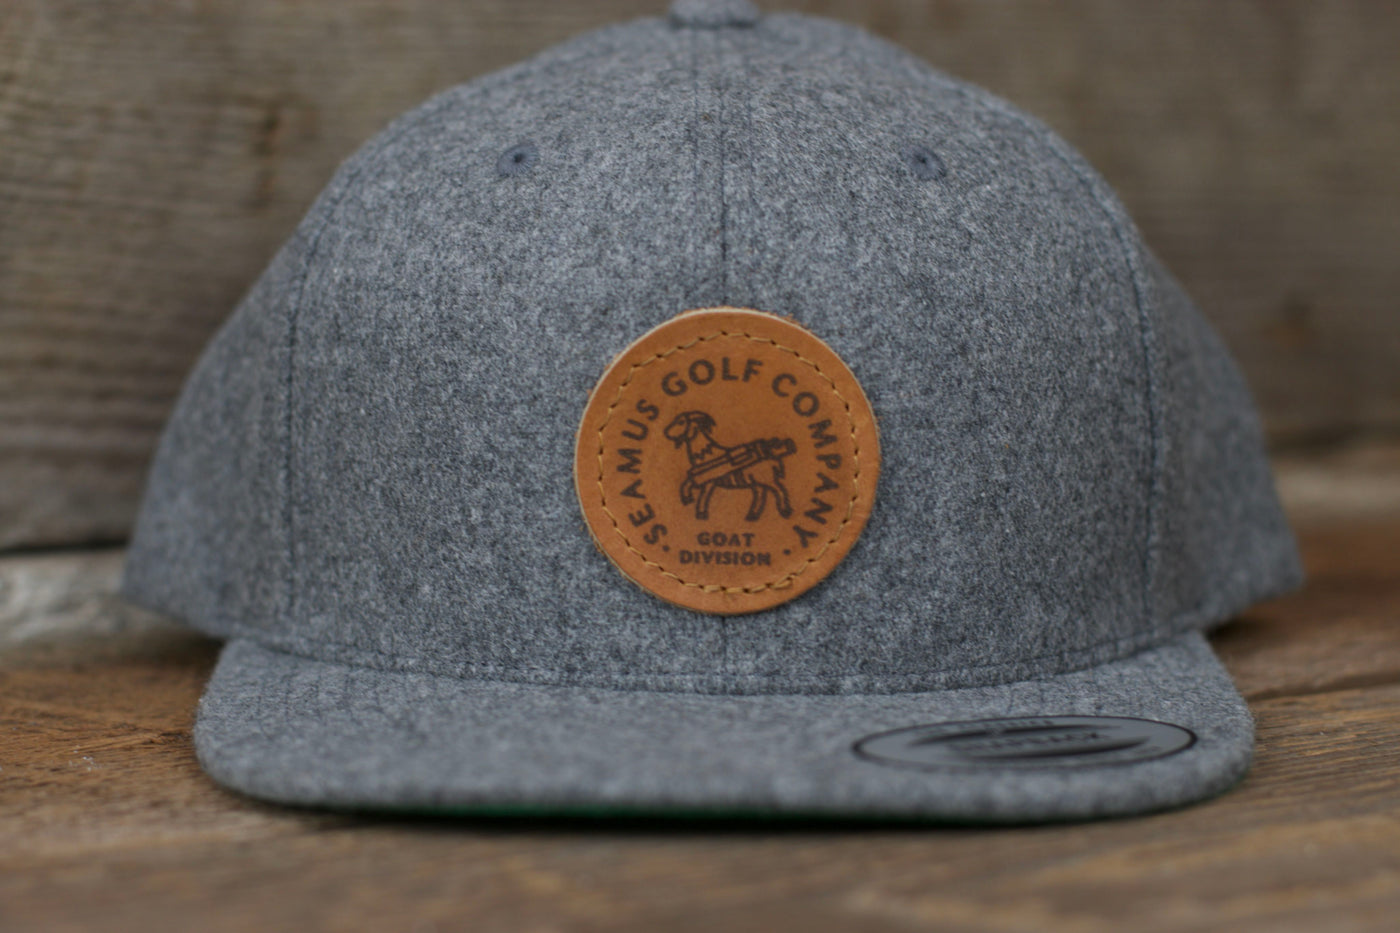 Seamus Goat Division Snapback Hat - Grey ac4a7d984652